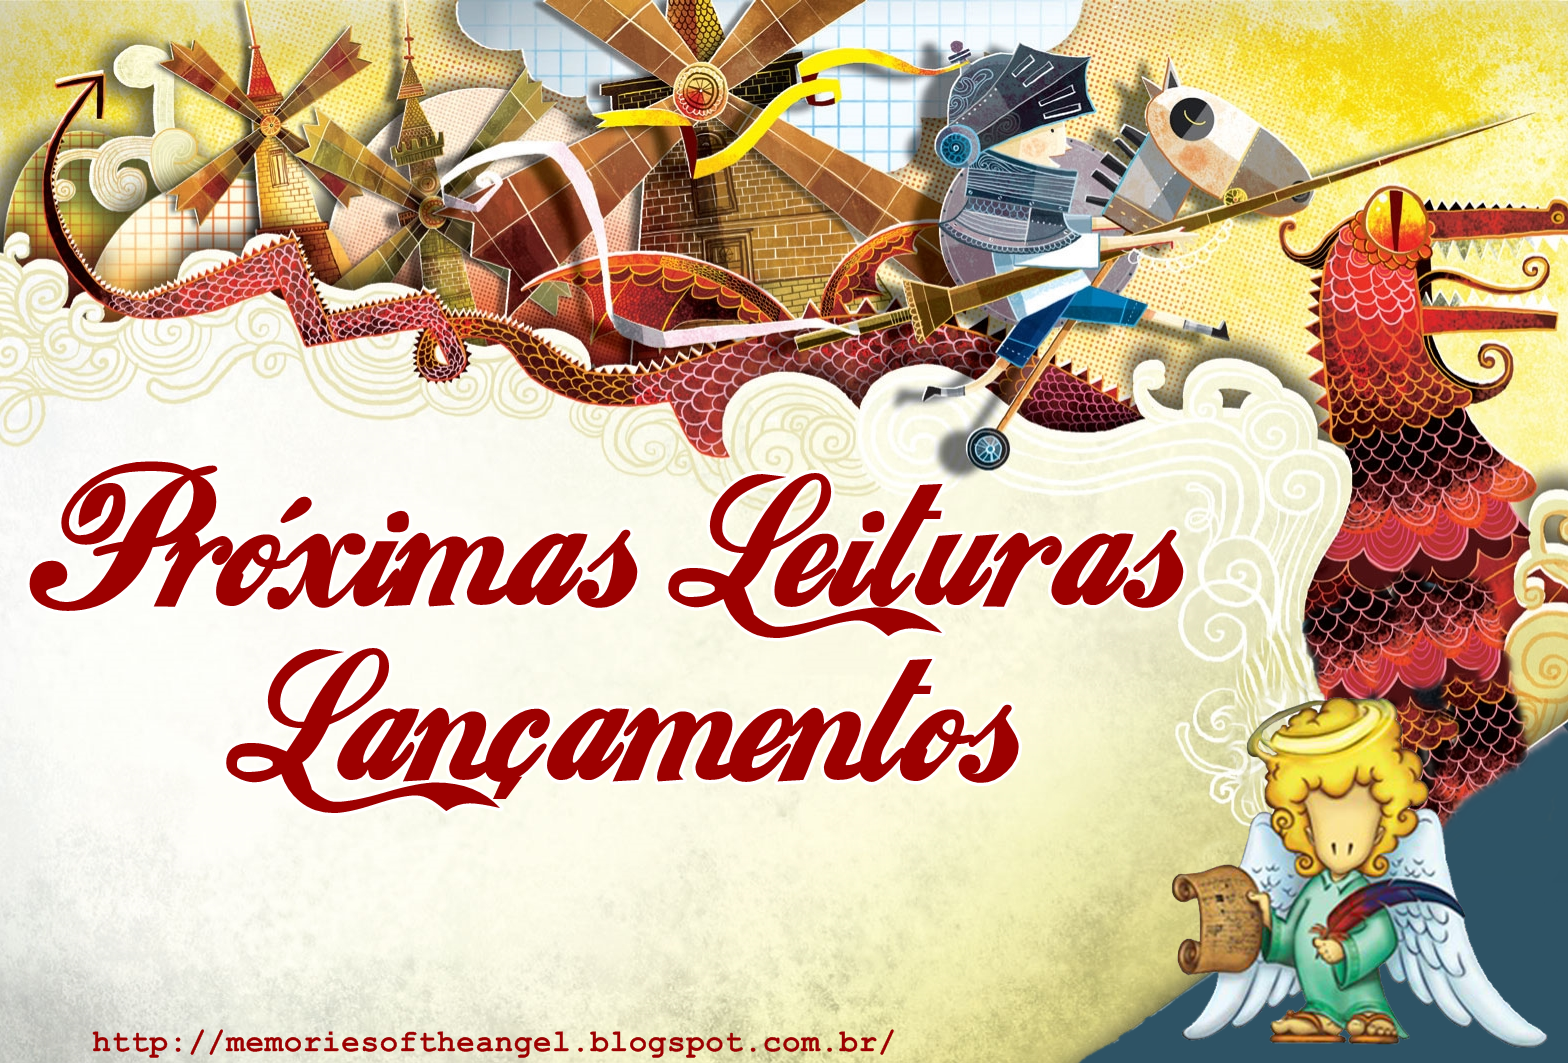 Próximas Leituras - Memories of the Angel